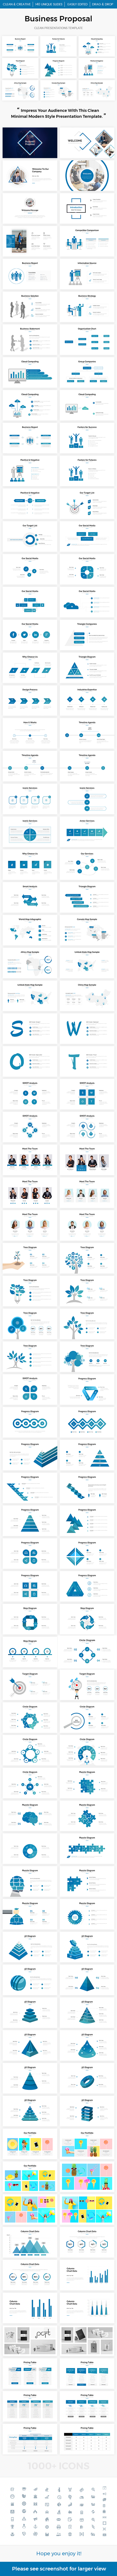 Business Proposal PowerPoint Presentation Template - Business PowerPoint Templates